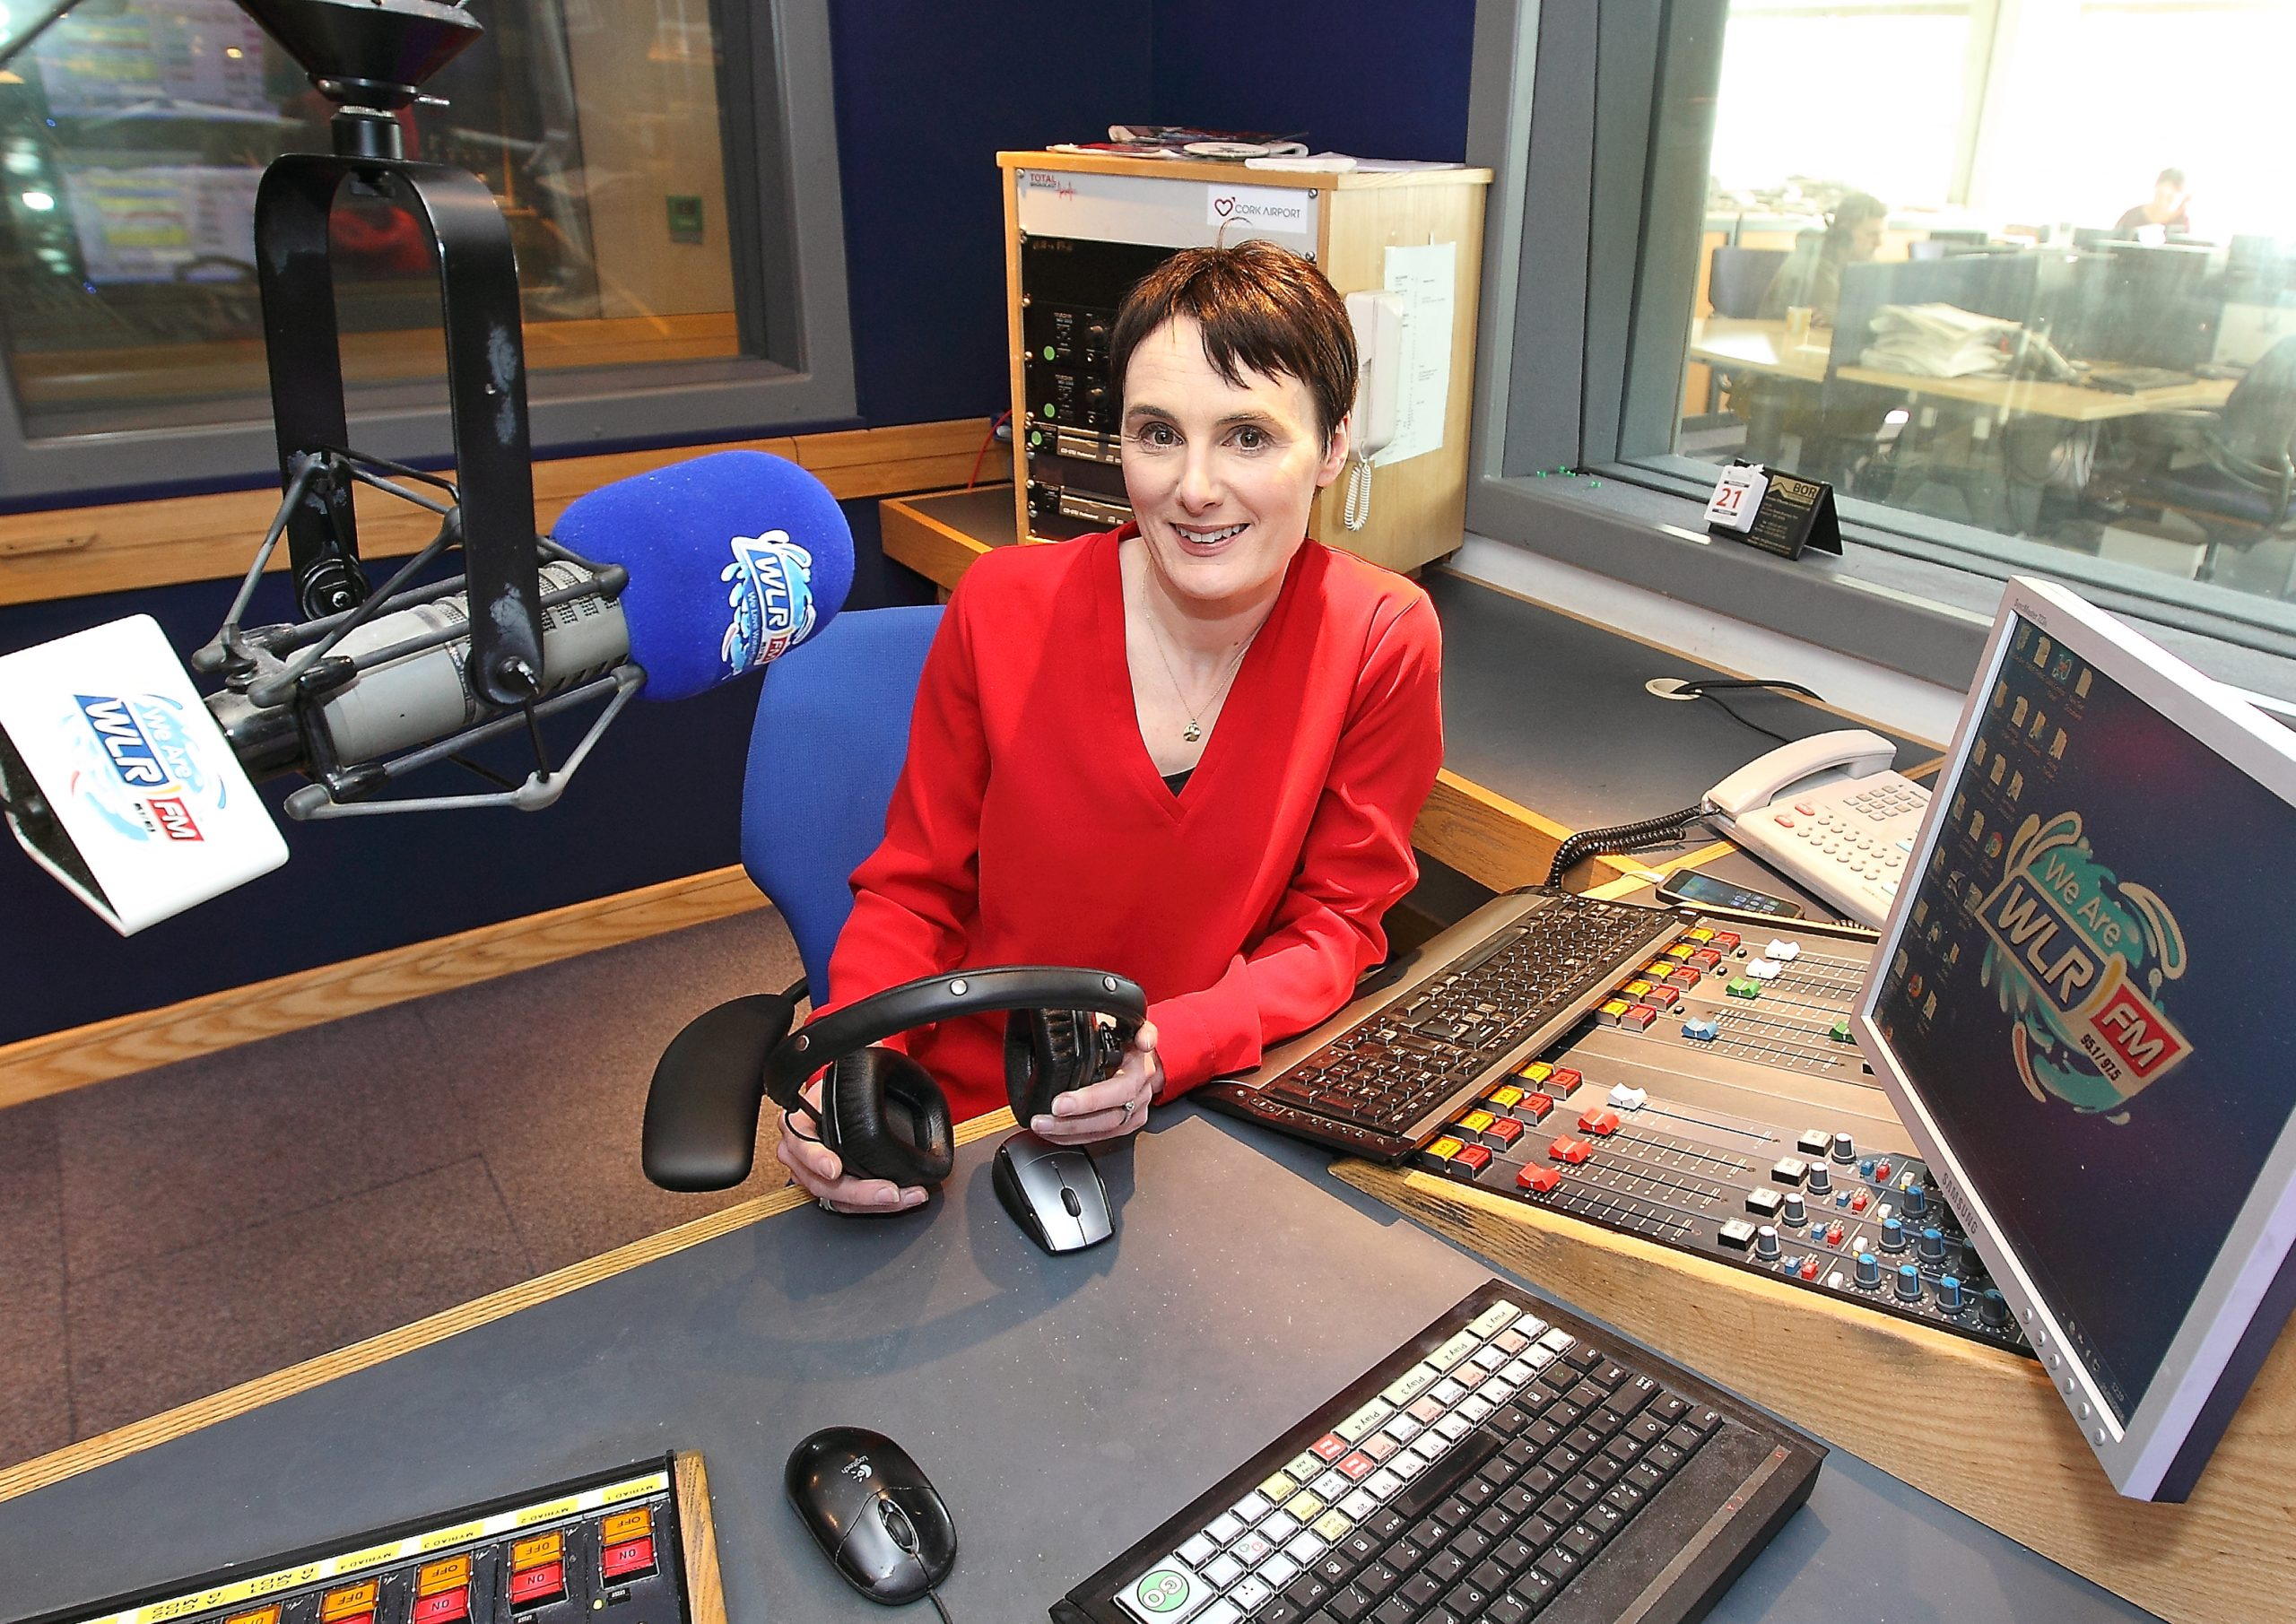 WLR launches new business show 'The Hot Desk'